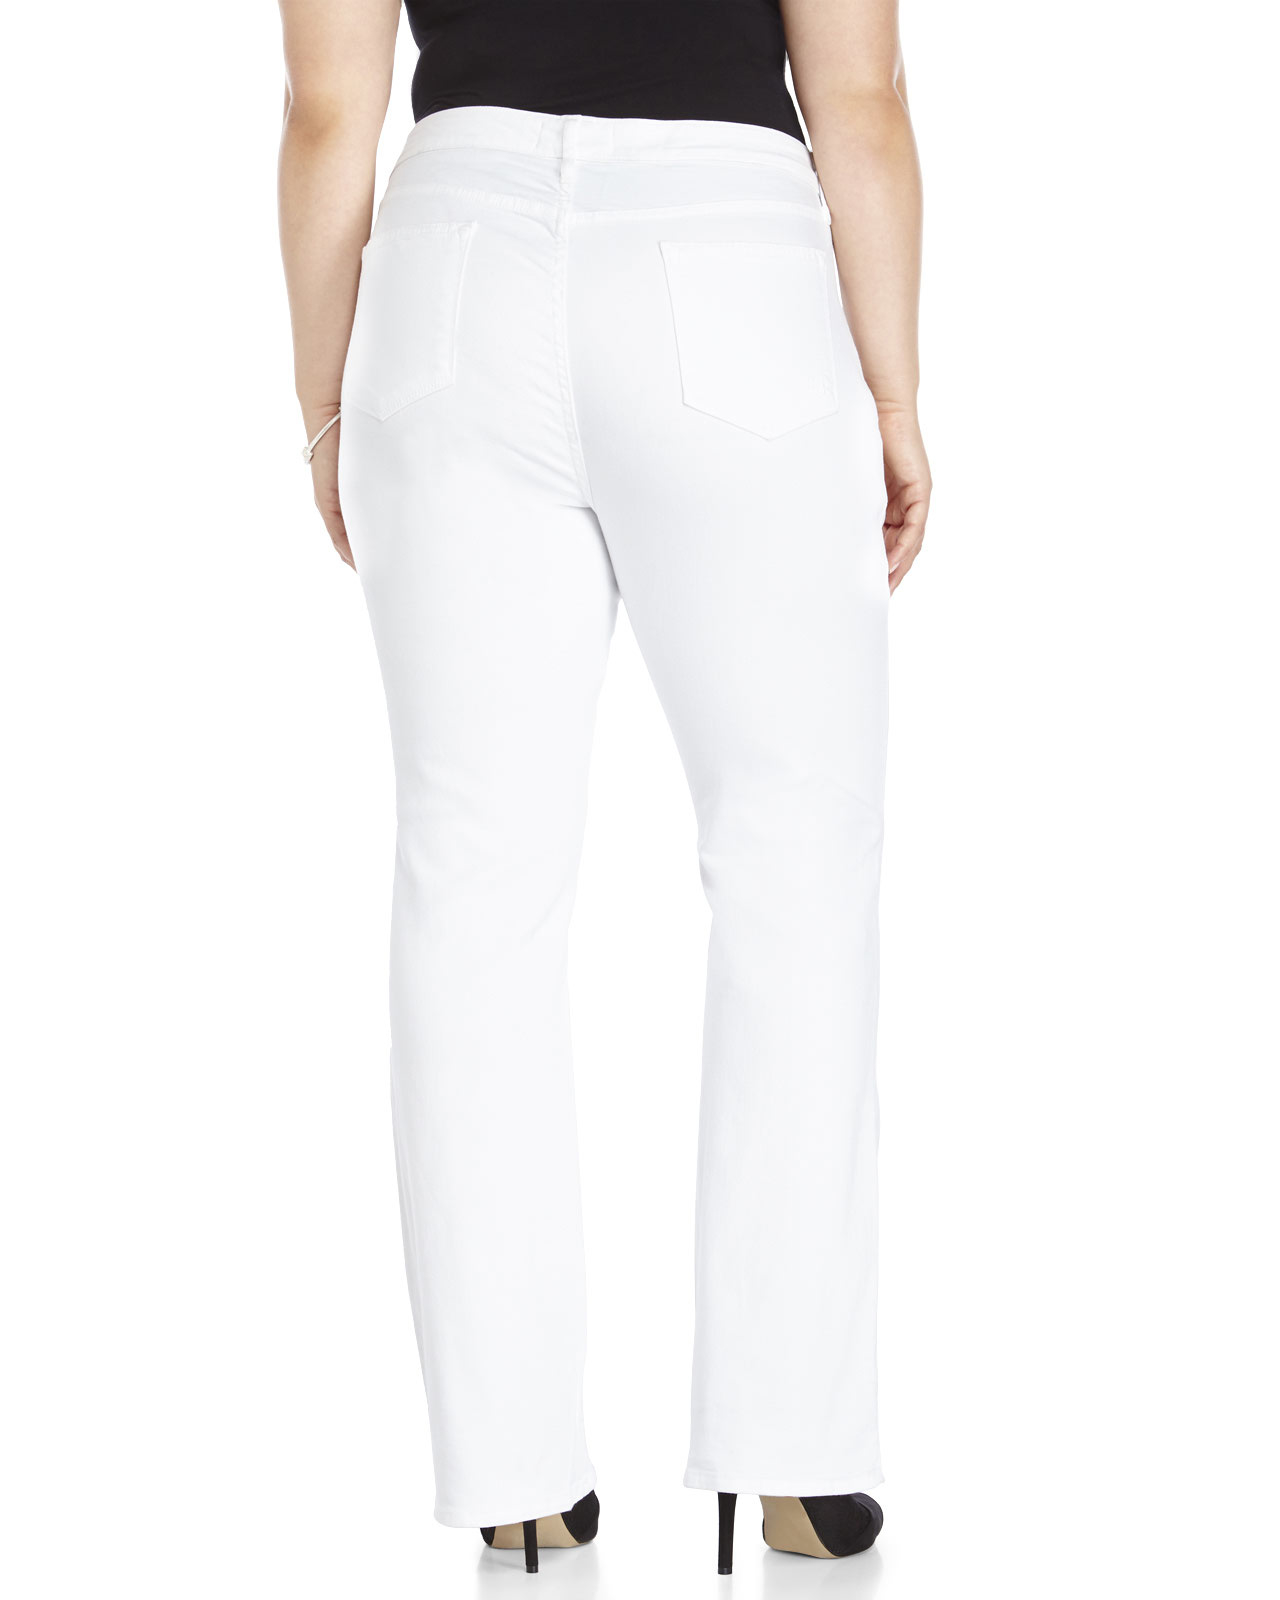 Cj by cookie johnson Plus Size White Grace Bootcut Jeans in White ...